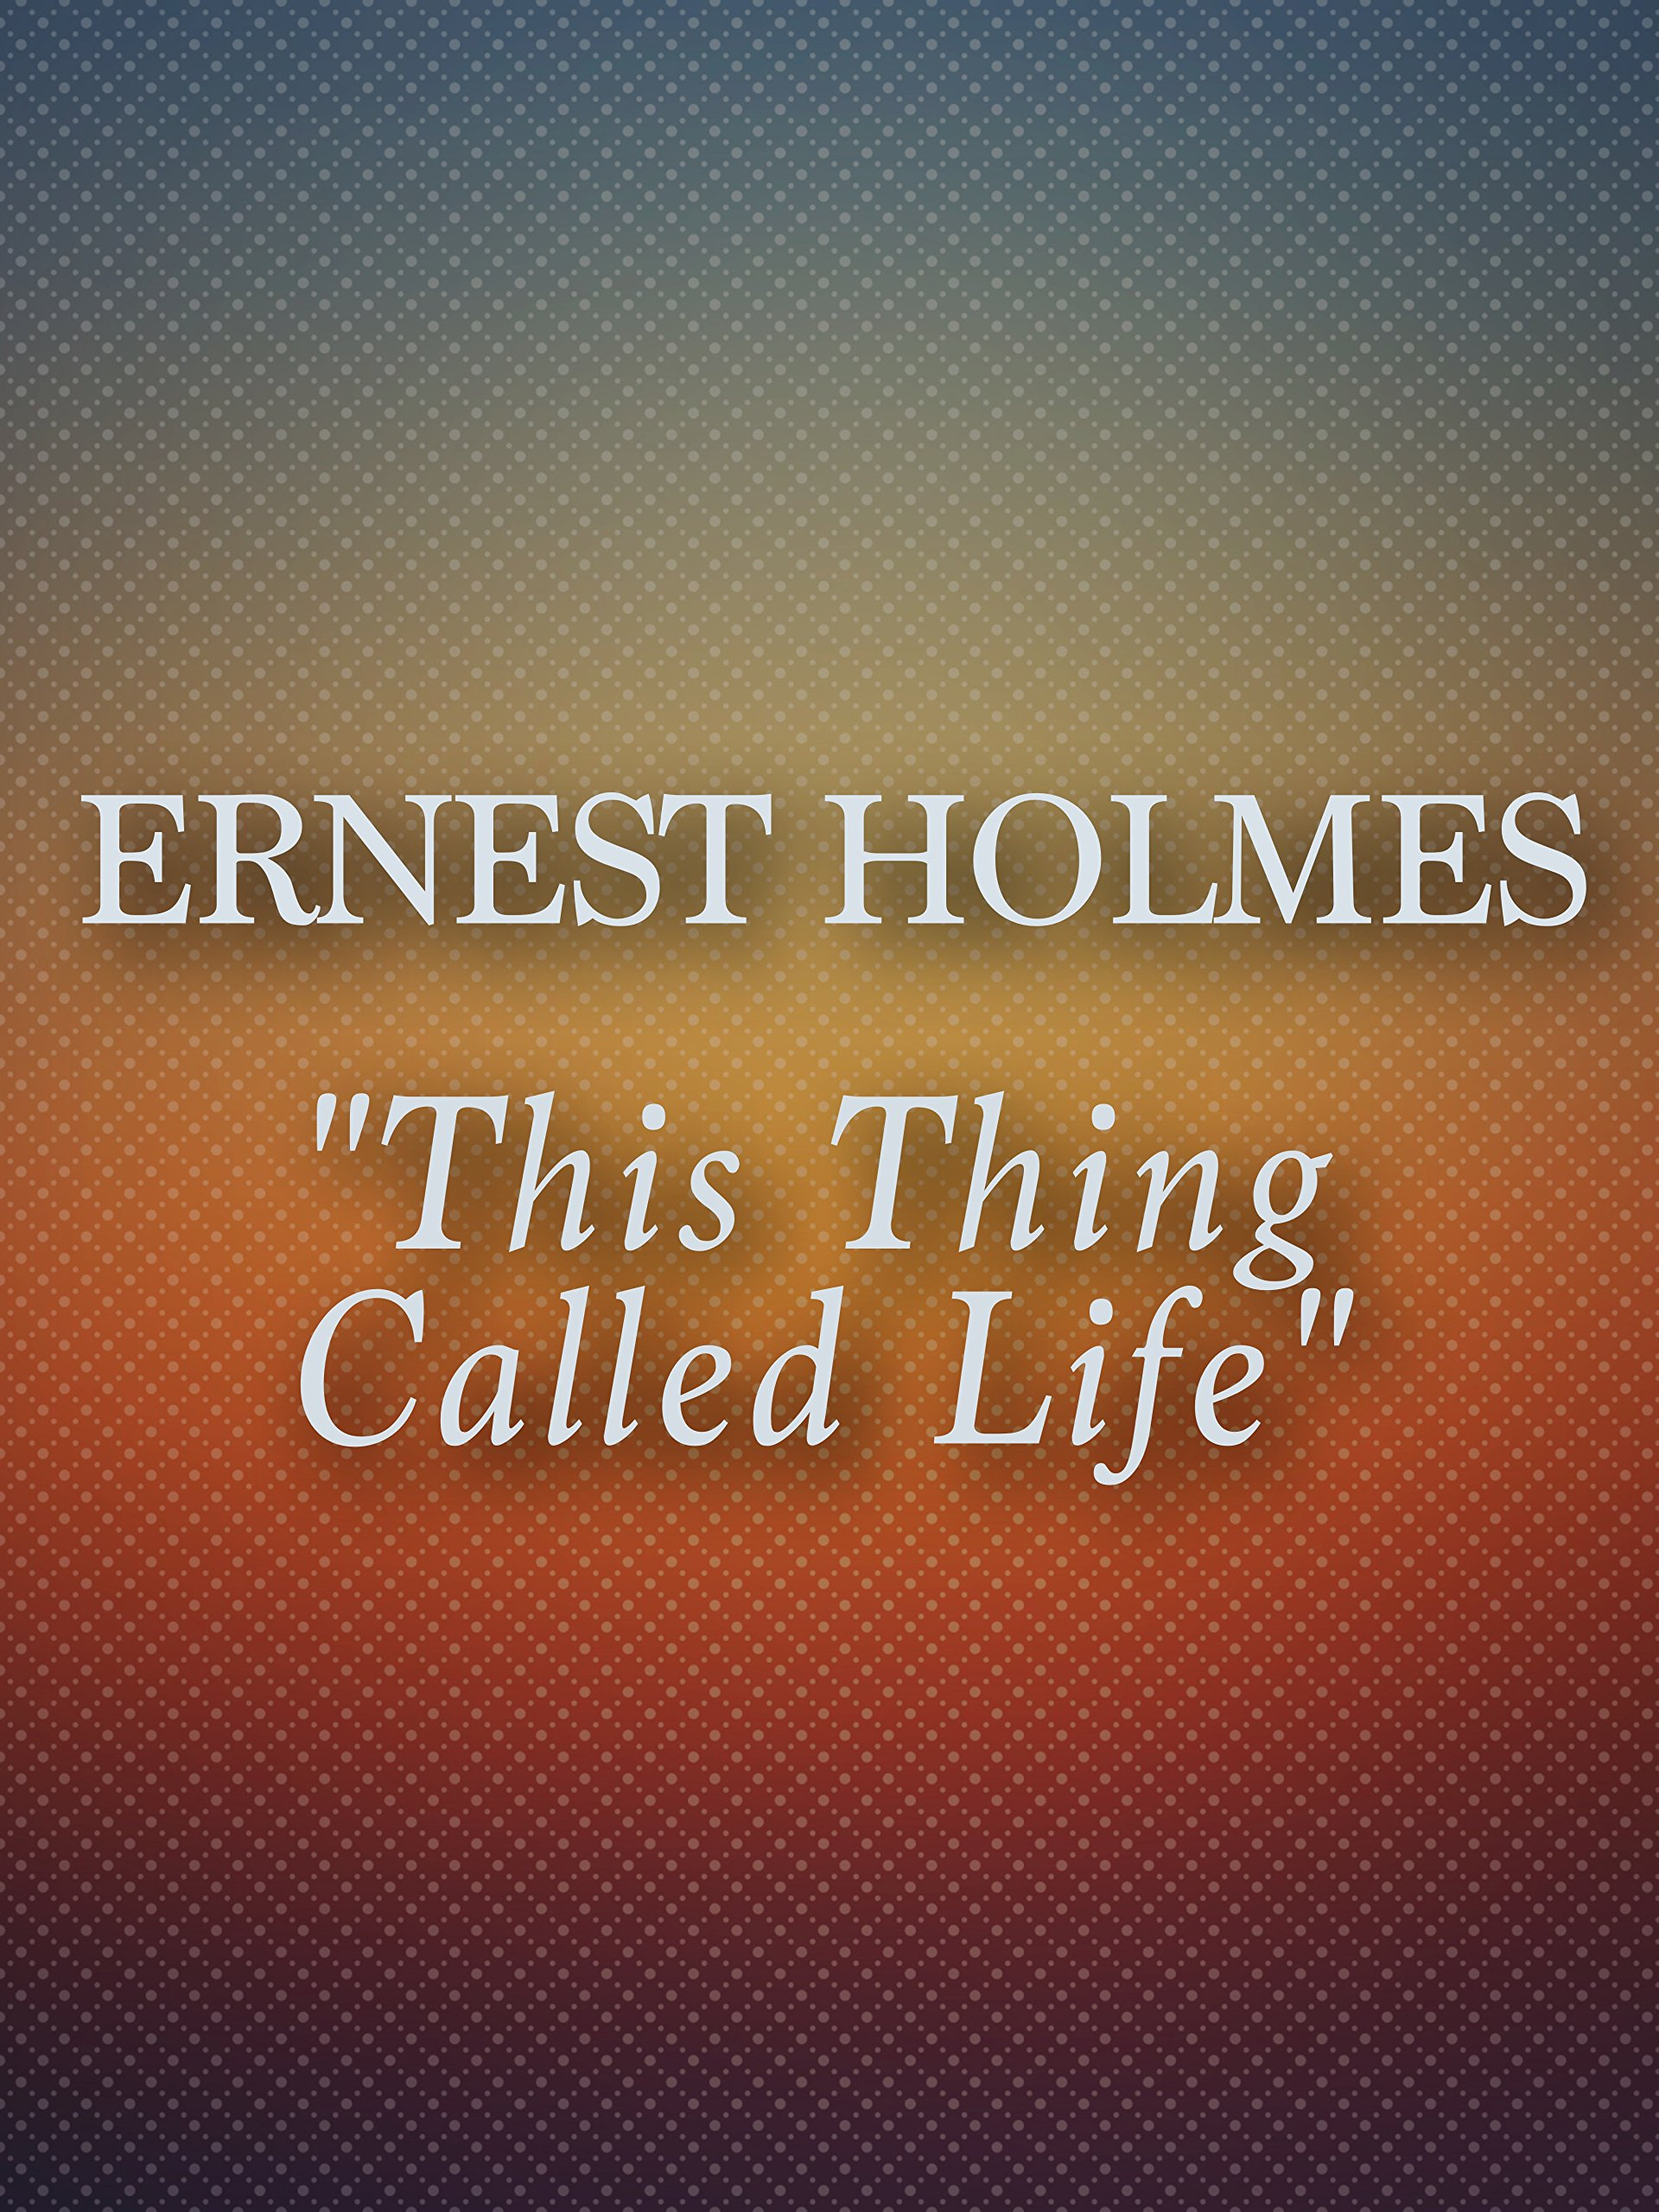 Ernest Holmes - This Thing Called Life